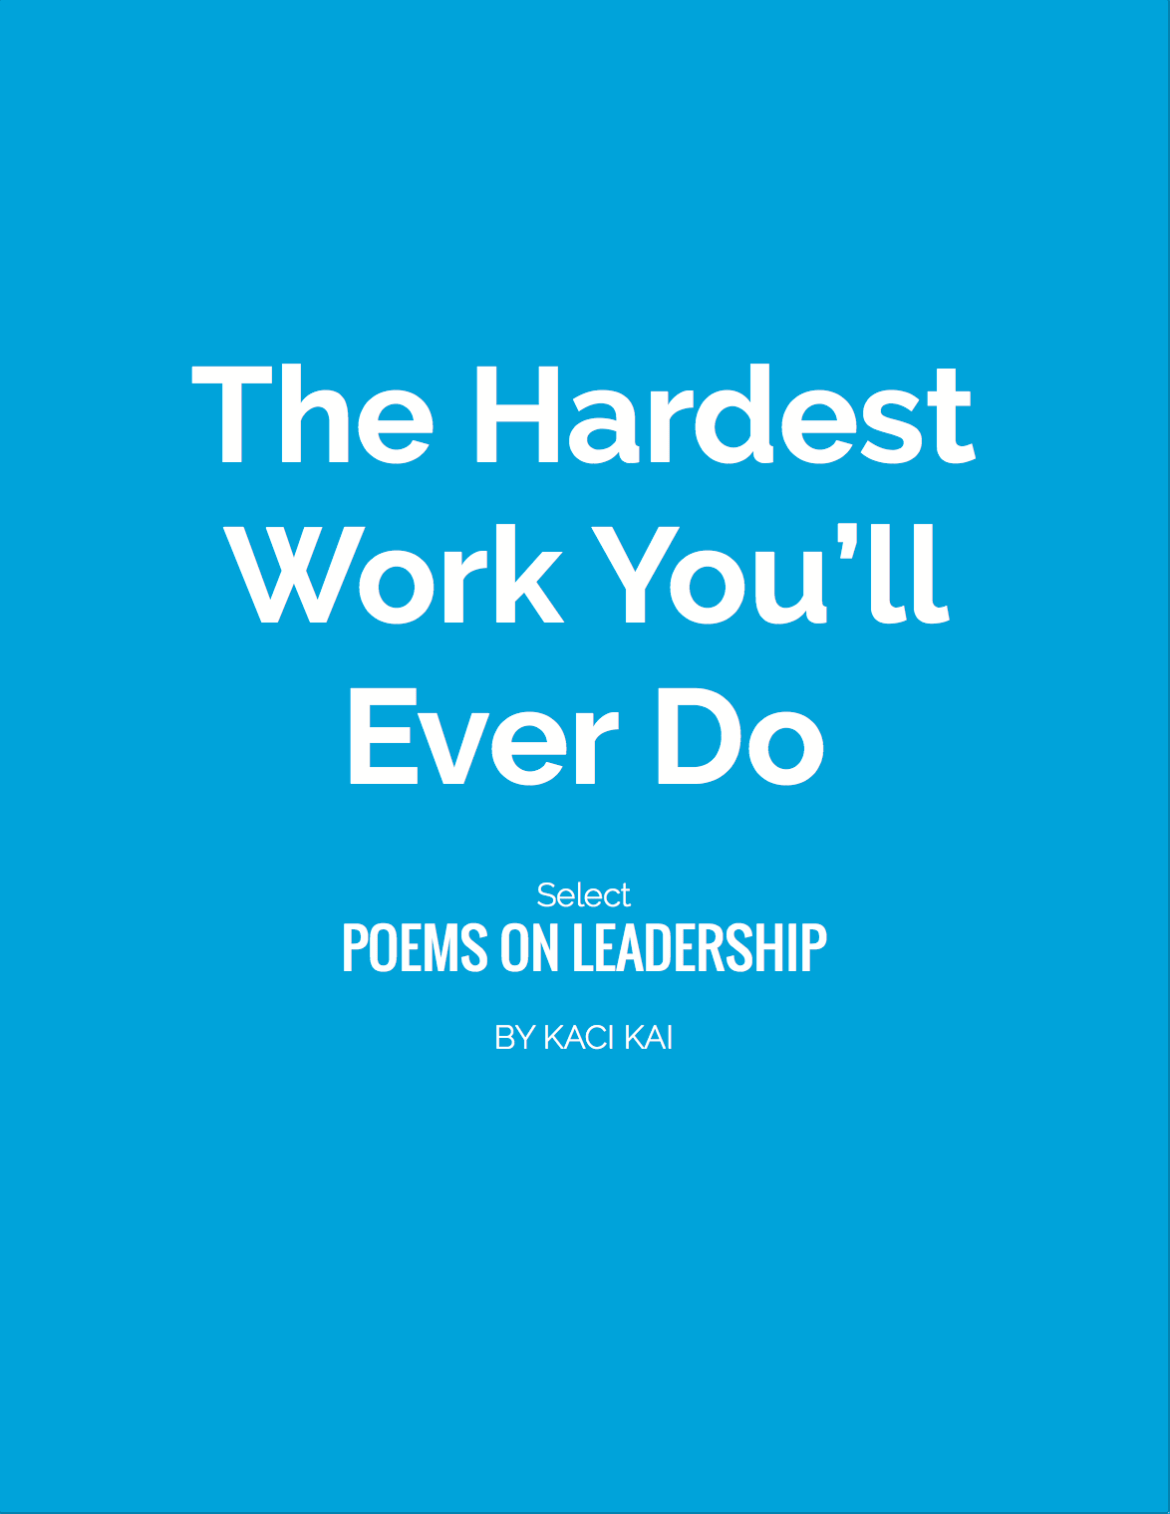 The Hardest Work You'll Ever Do: Select Poems on Leadership